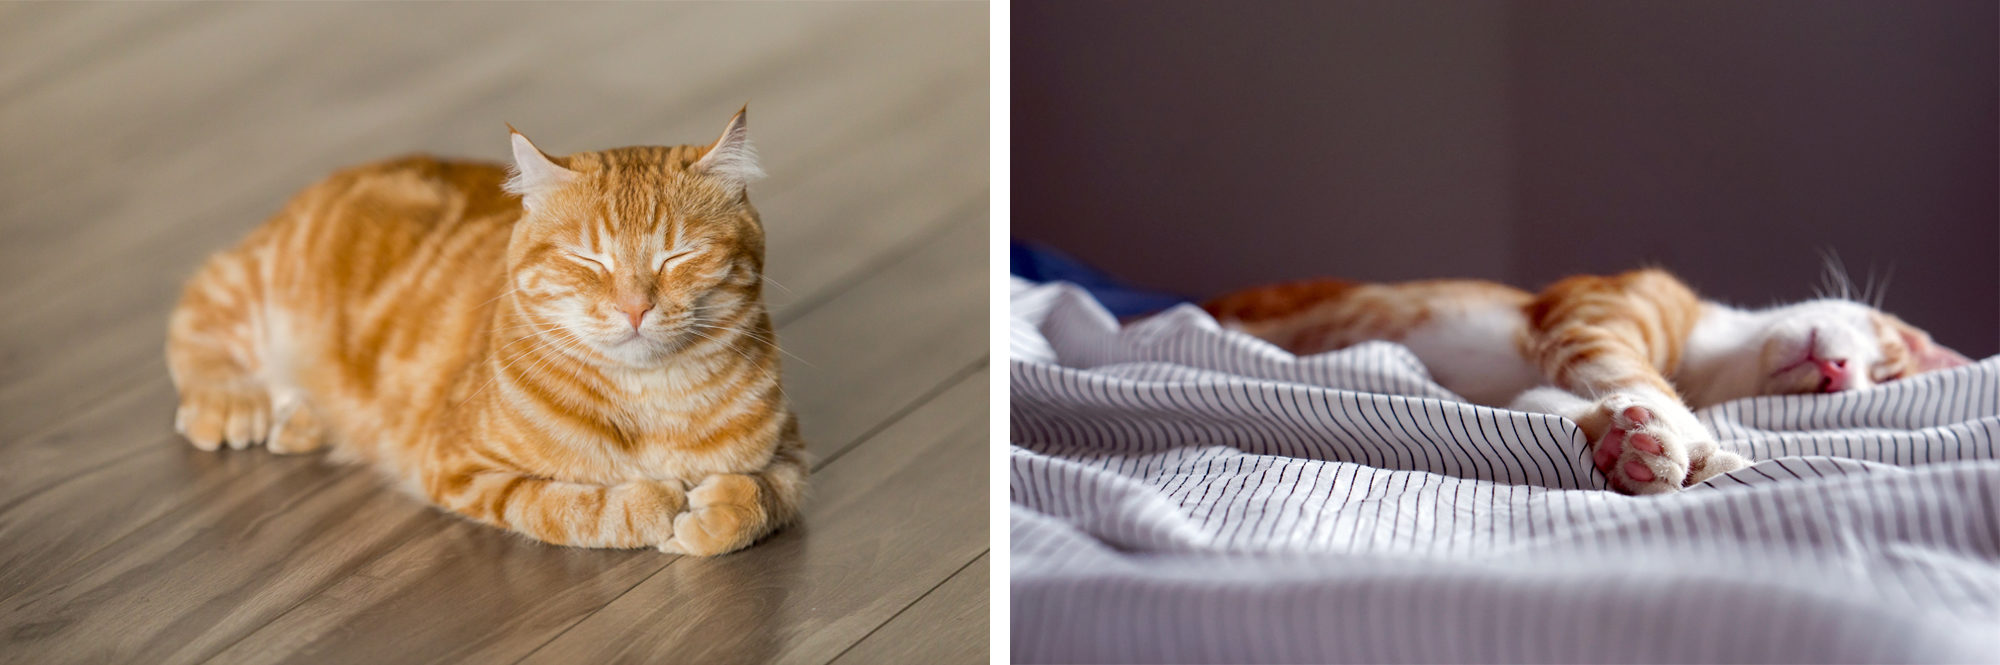 A fat orange striped kitty looking peaceful with its eyes shut lying on the parquet floors (left). Adorable orange and white tiger kitty sleeping on its side, all tangled up in blue and white striped bedsheets (right).